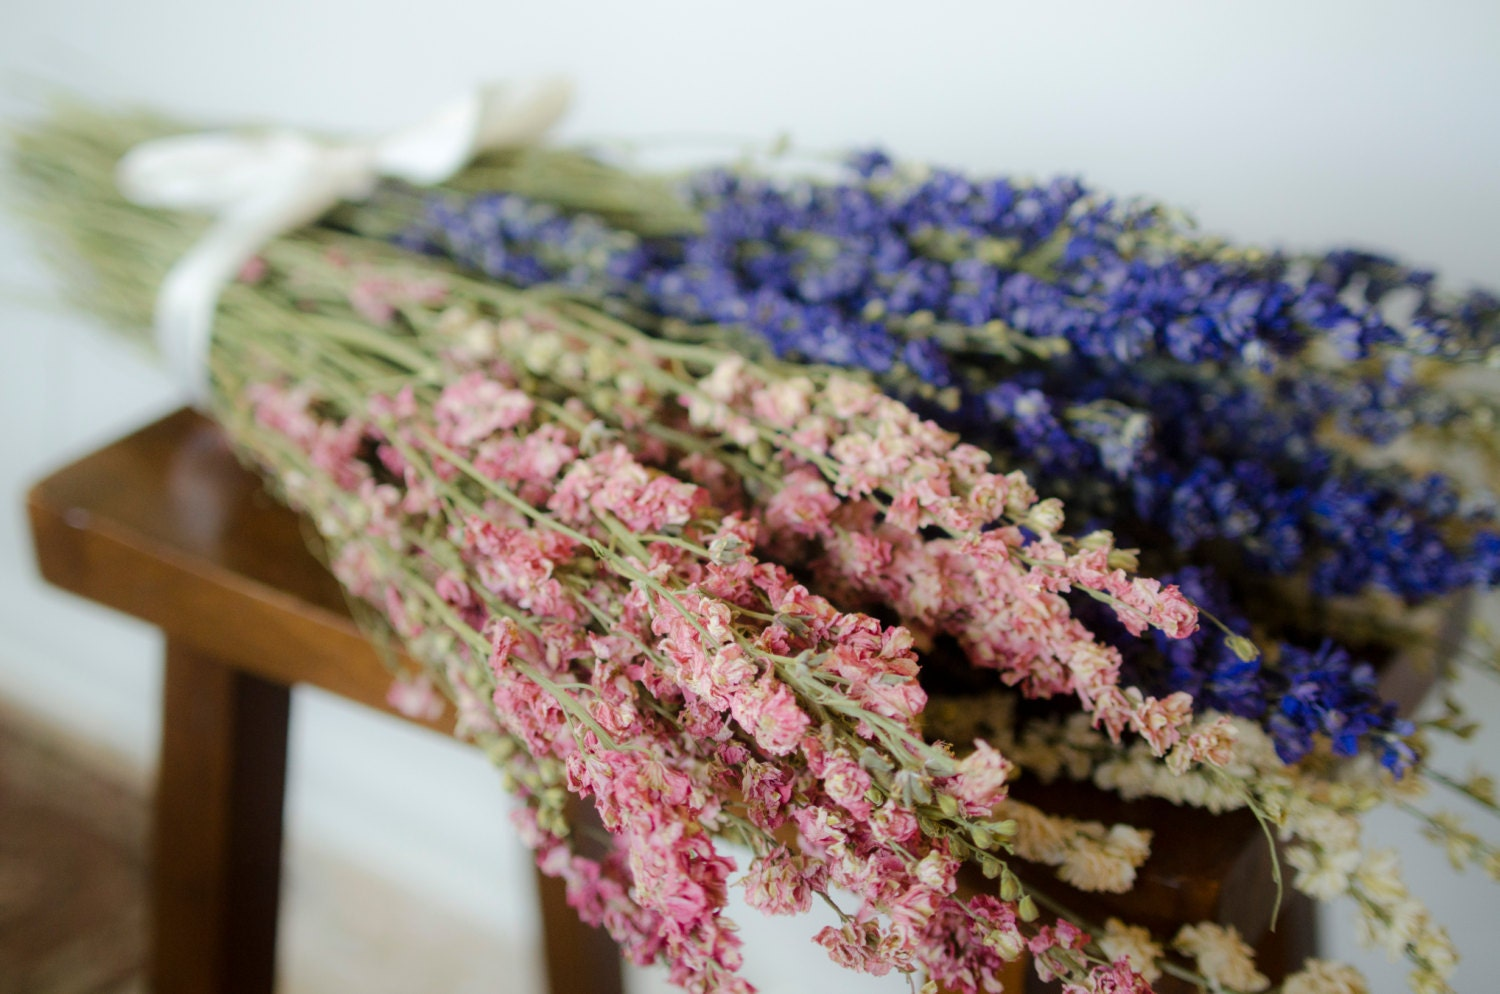 How to scrapbook dried flowers - Bunch Of Larkspur Purple Larkspur Pink Larkspur White Larkspur Blue Dried Flowers White Dried Flowers Pink Dried Flowers